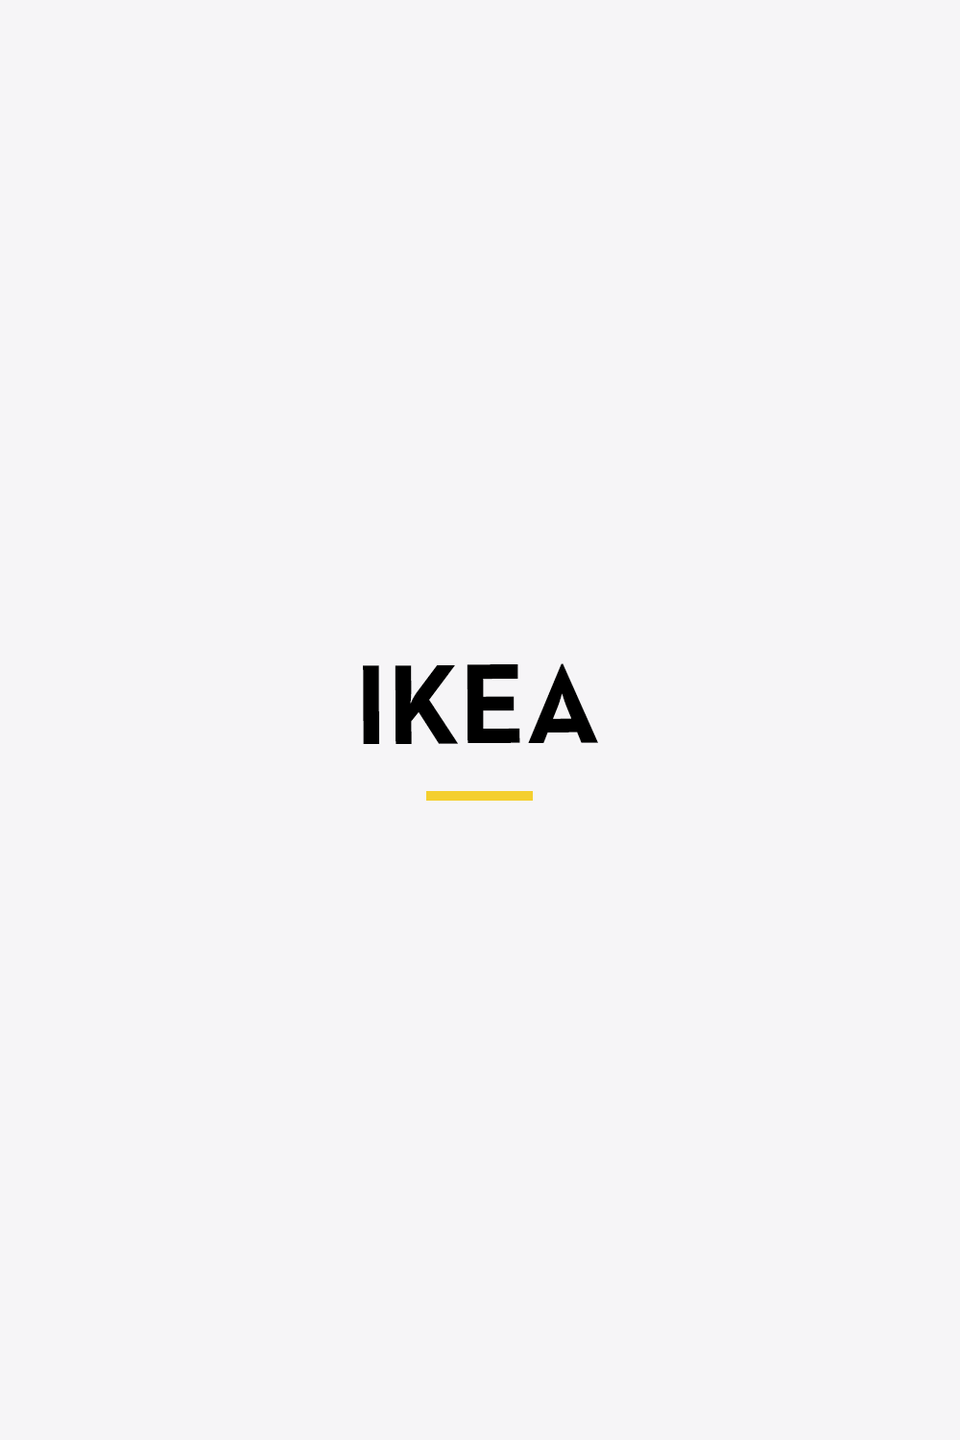 """<p>Other Swedish parents were not so lucky. The ones who wanted to name their baby IKEA found out <a href=""""http://www.cnn.com/2010/LIVING/07/03/mf.baby.naming.laws/index.html"""" rel=""""nofollow noopener"""" target=""""_blank"""" data-ylk=""""slk:Sweden won't let you name your baby after the company"""" class=""""link rapid-noclick-resp"""">Sweden won't let you name your baby after the company</a> — and that ruling stands.</p>"""